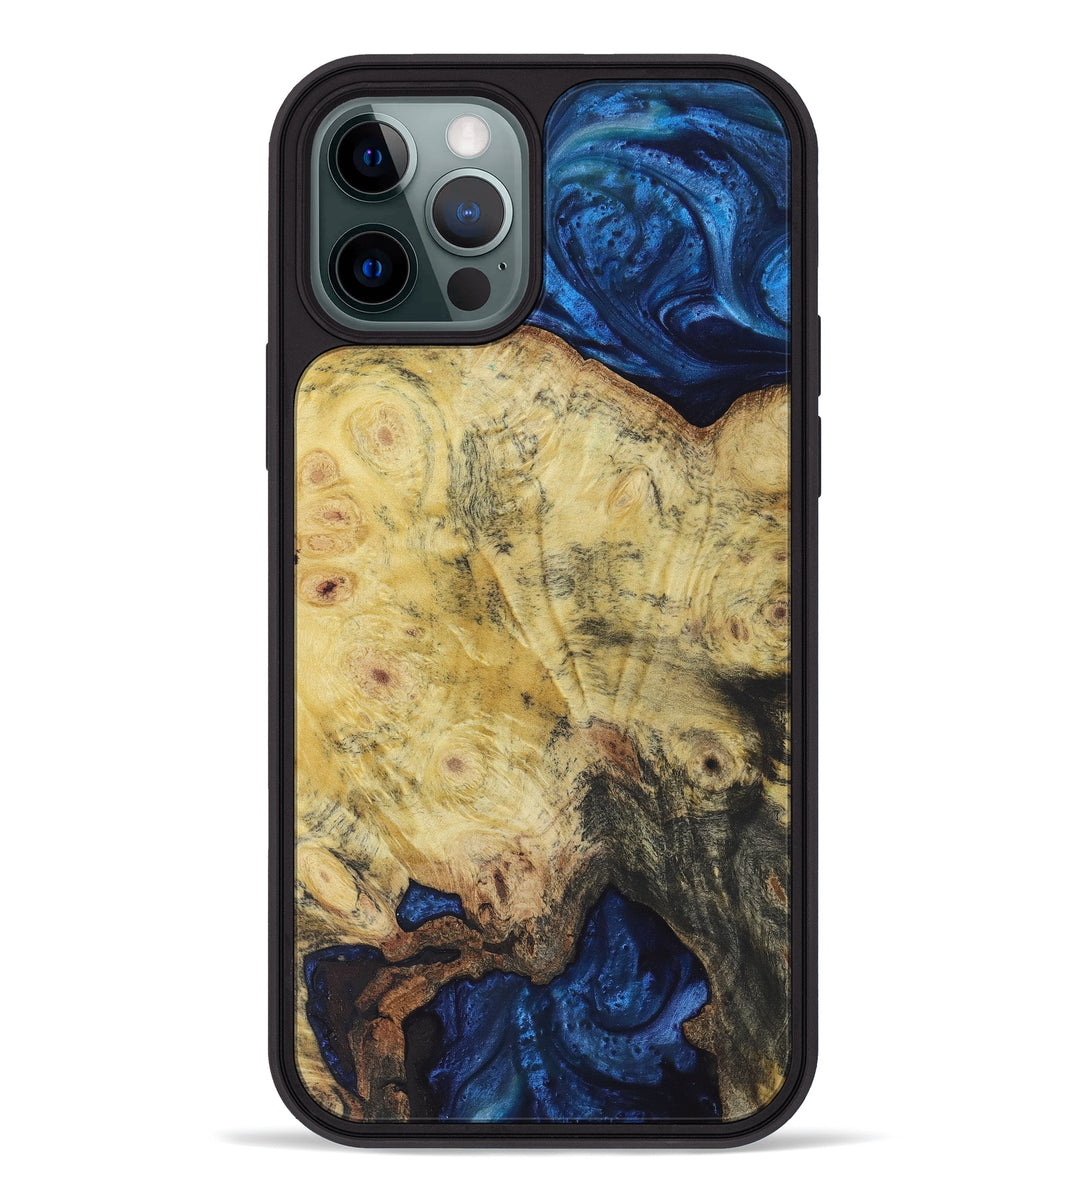 iPhone 12 Pro Wood+Resin Phone Case - Andrzej (Dark Blue, 396081)